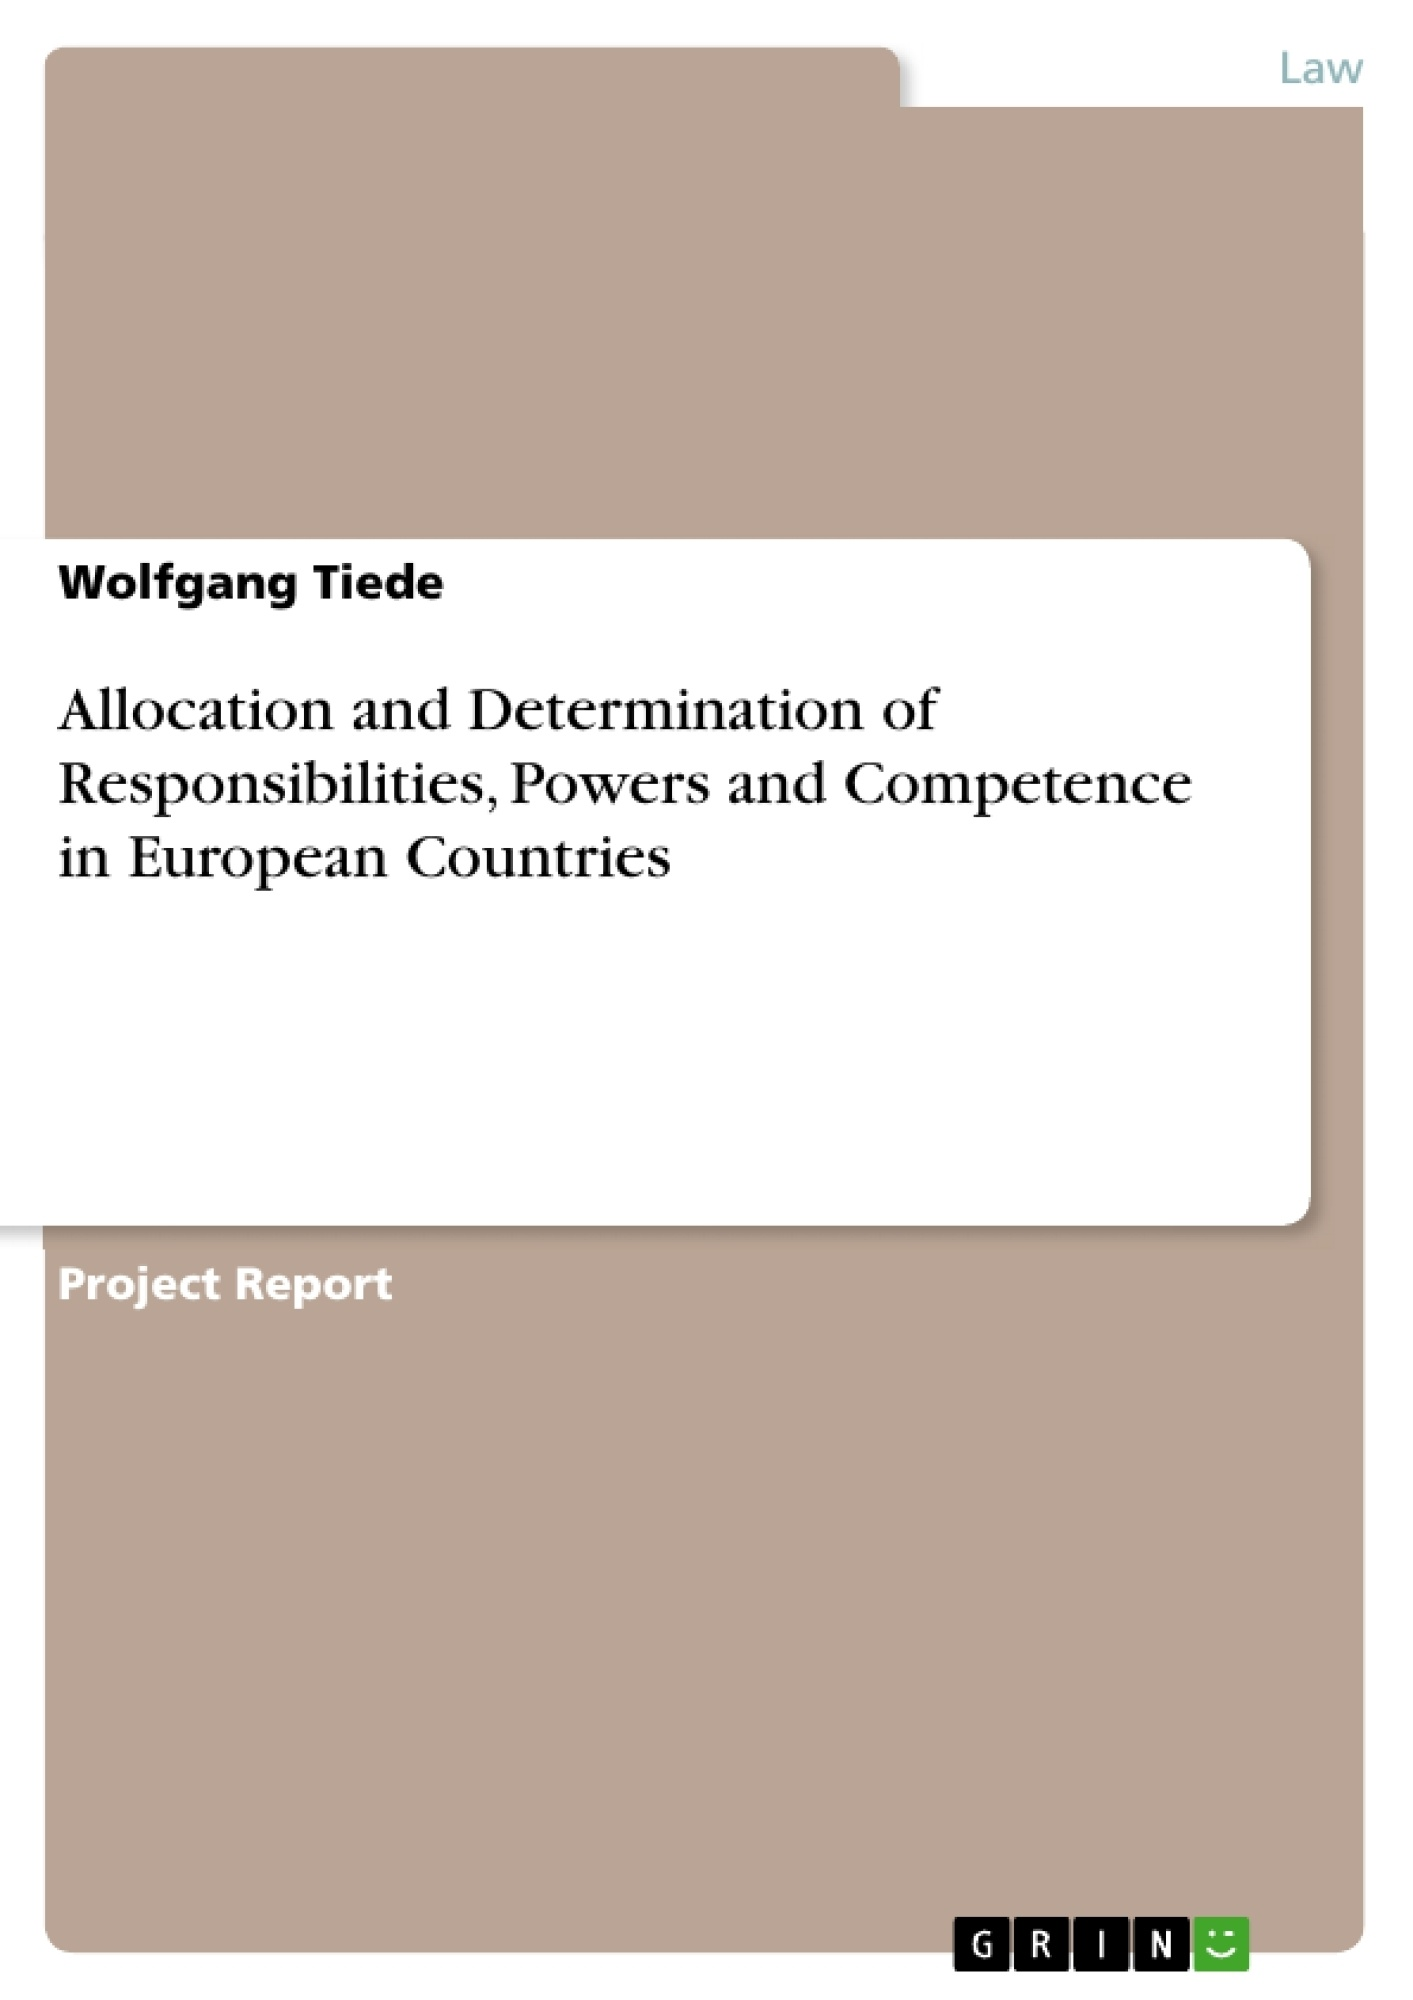 Title: Allocation and Determination of Responsibilities, Powers and Competence in European Countries